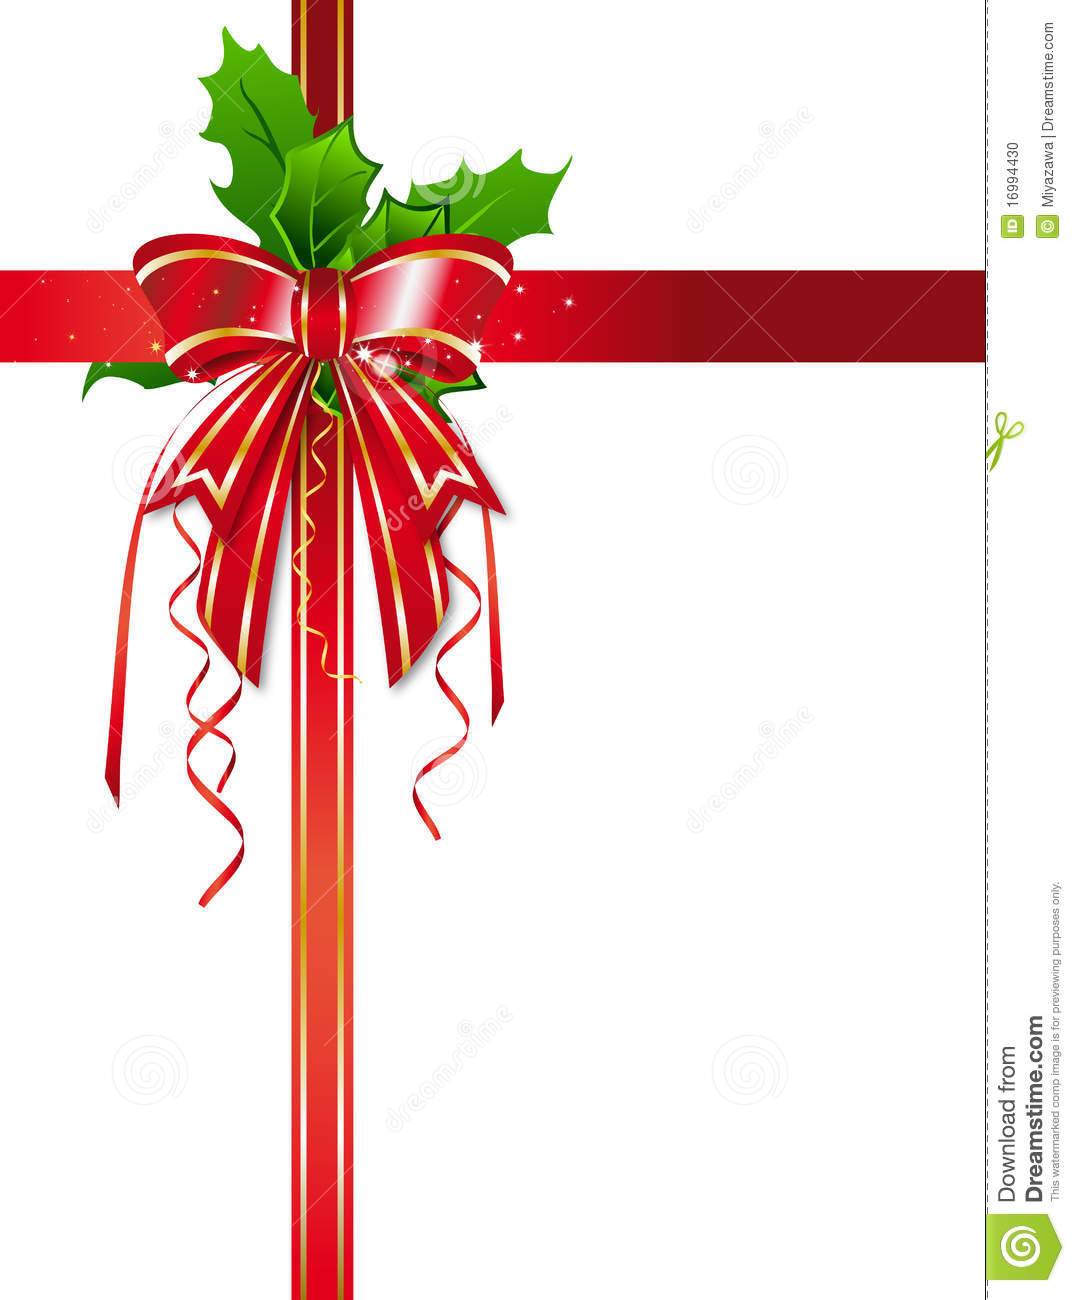 More similar stock images of ` Christmas ribbon `